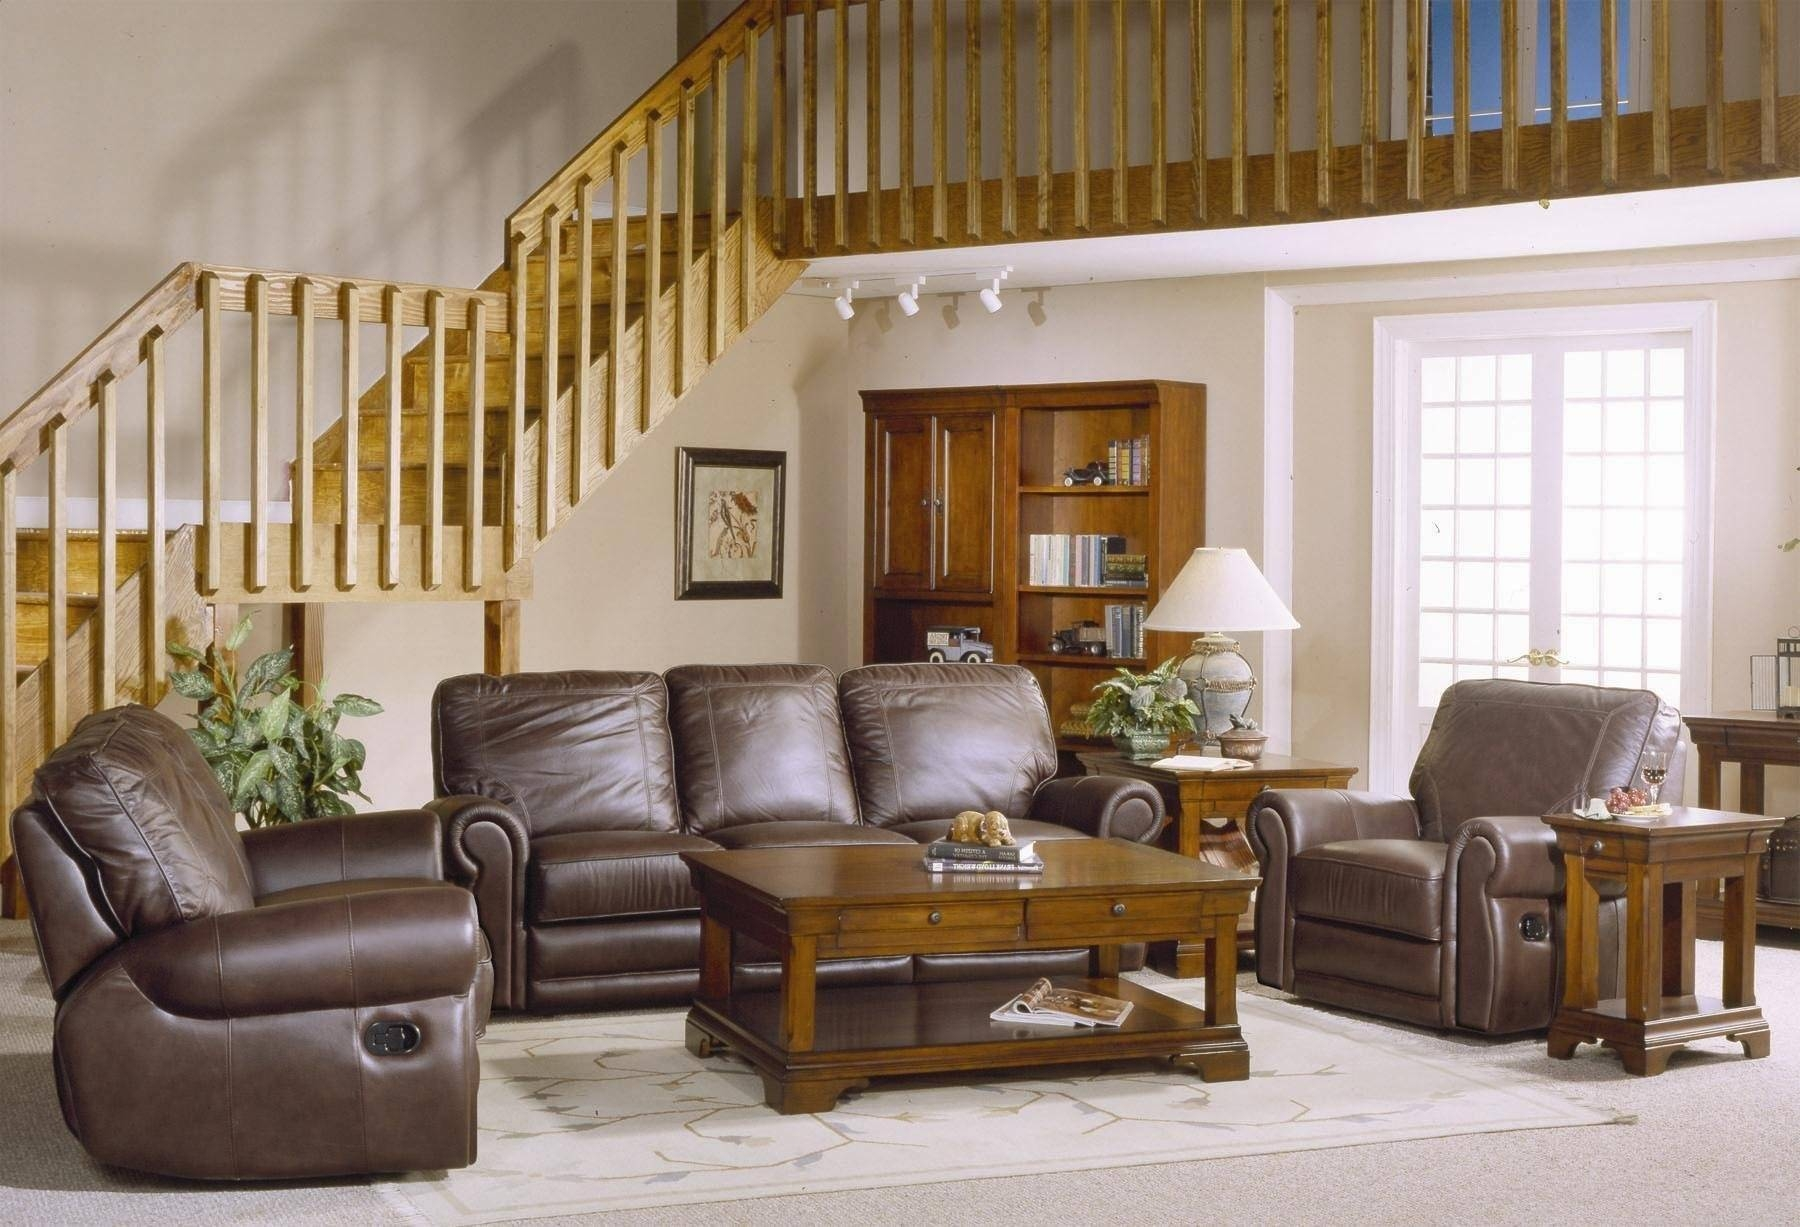 Country Style Brown Leather Sofa Set With Sofa Loveseat And Chair inside Country Style Sofas (Image 3 of 15)